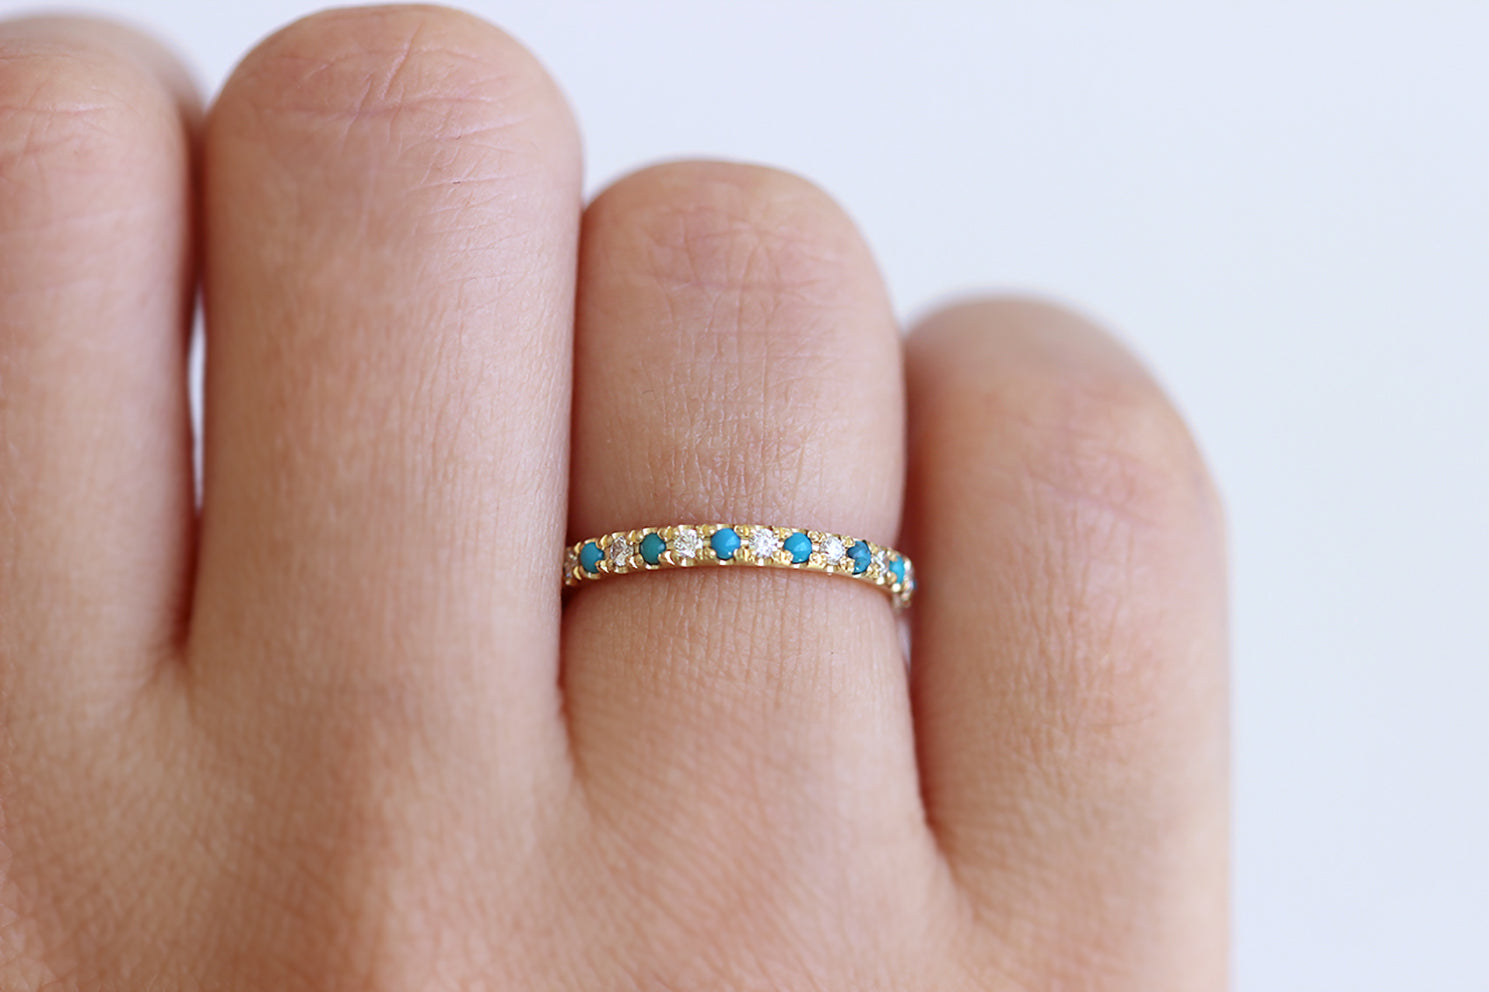 Turquoise Wedding Ring with Diamonds On Hand